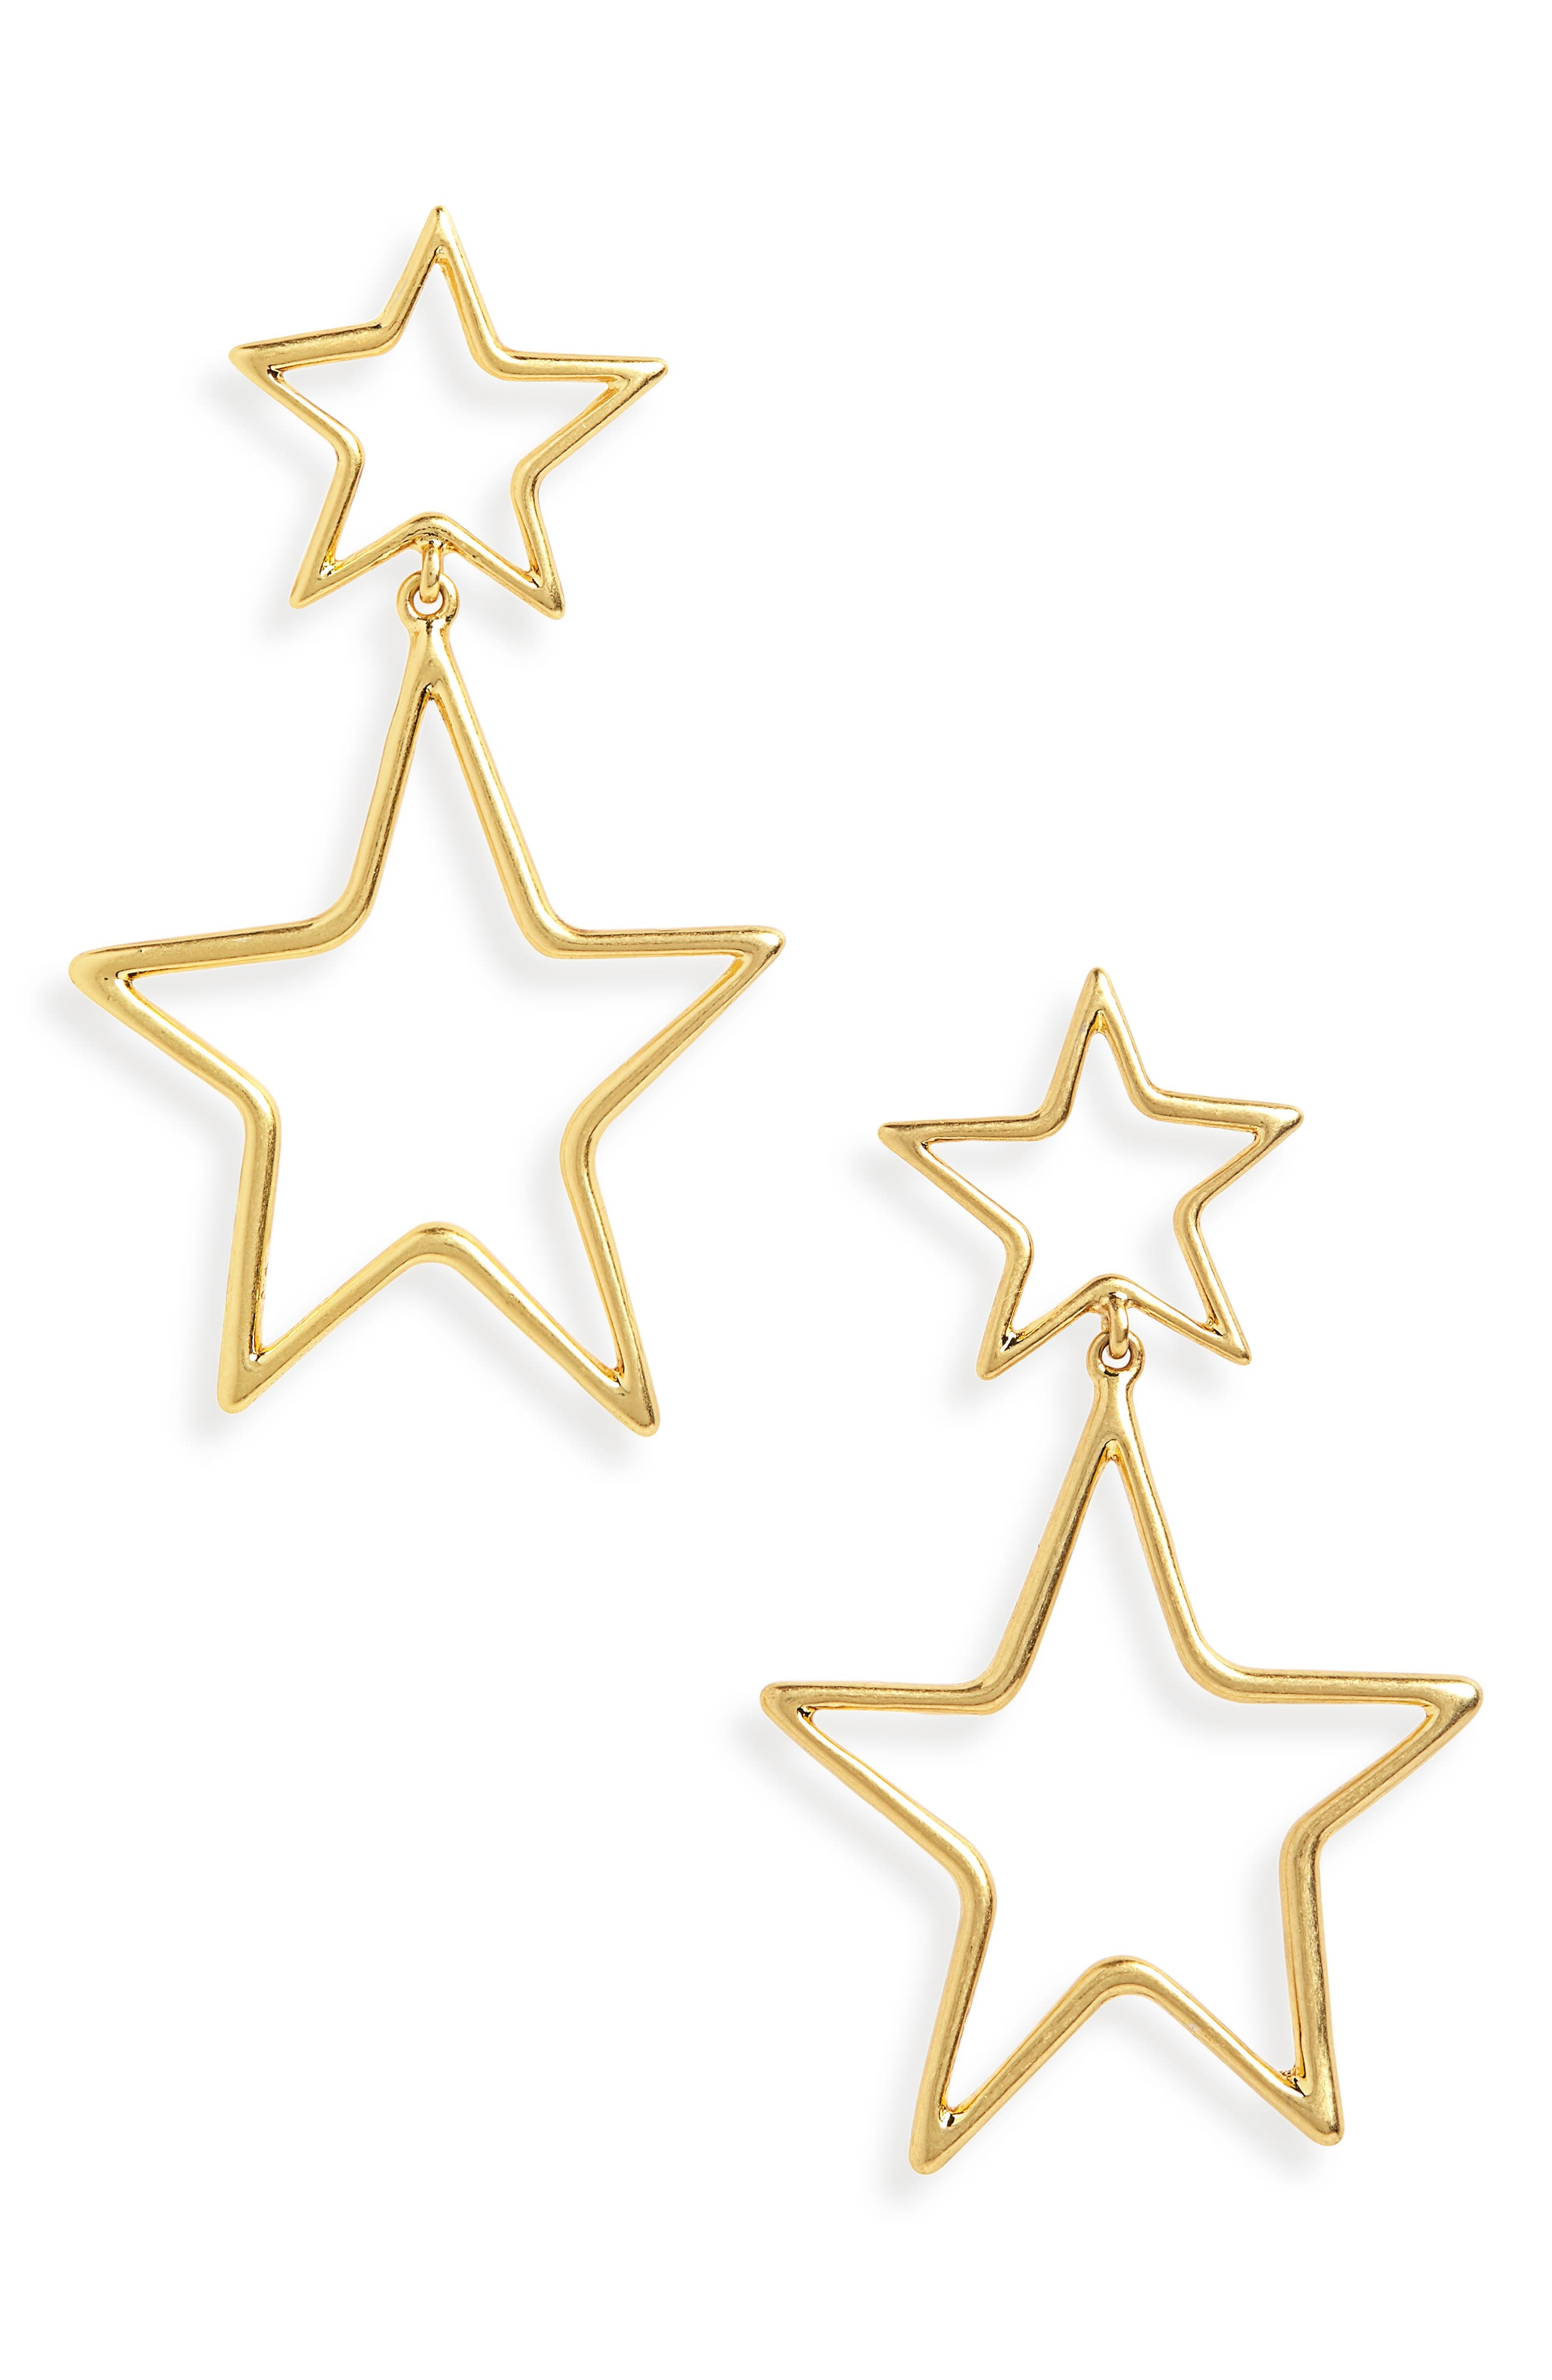 Night Star Statement Earrings,                             Main thumbnail 1, color,                             VINTAGE GOLD